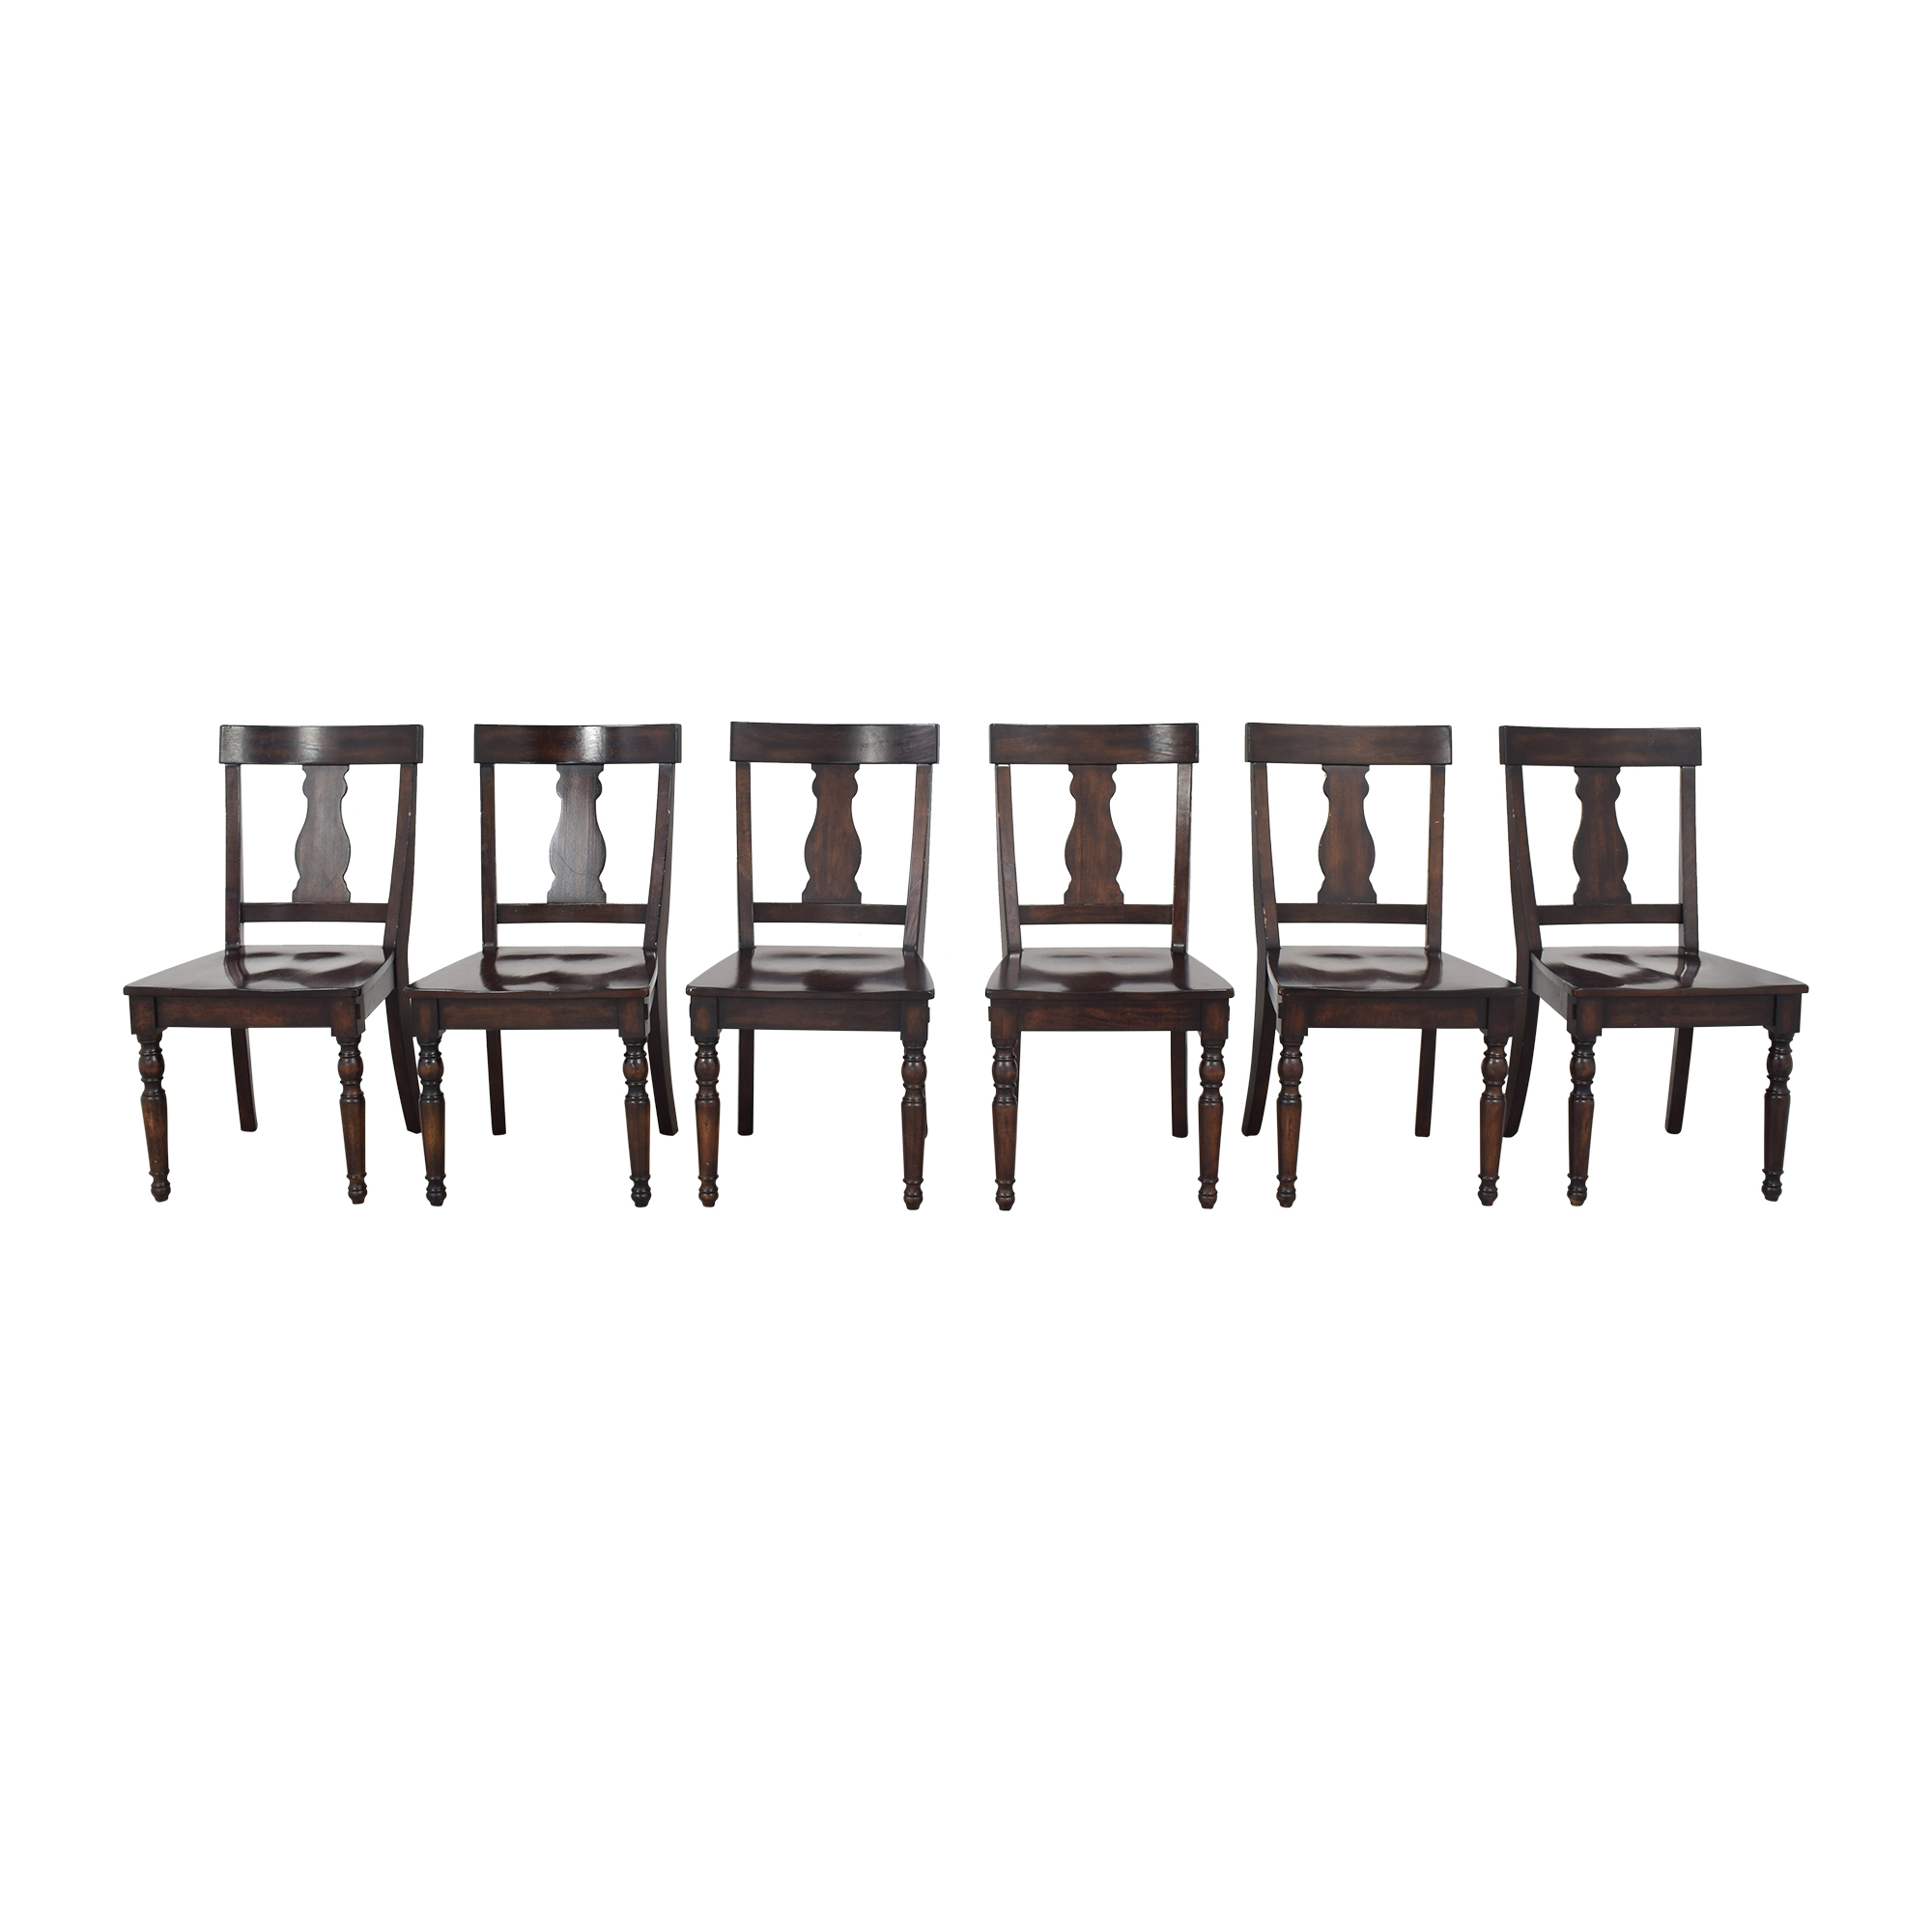 Pottery Barn Pottery Barn Fiddleback Dining Chairs discount